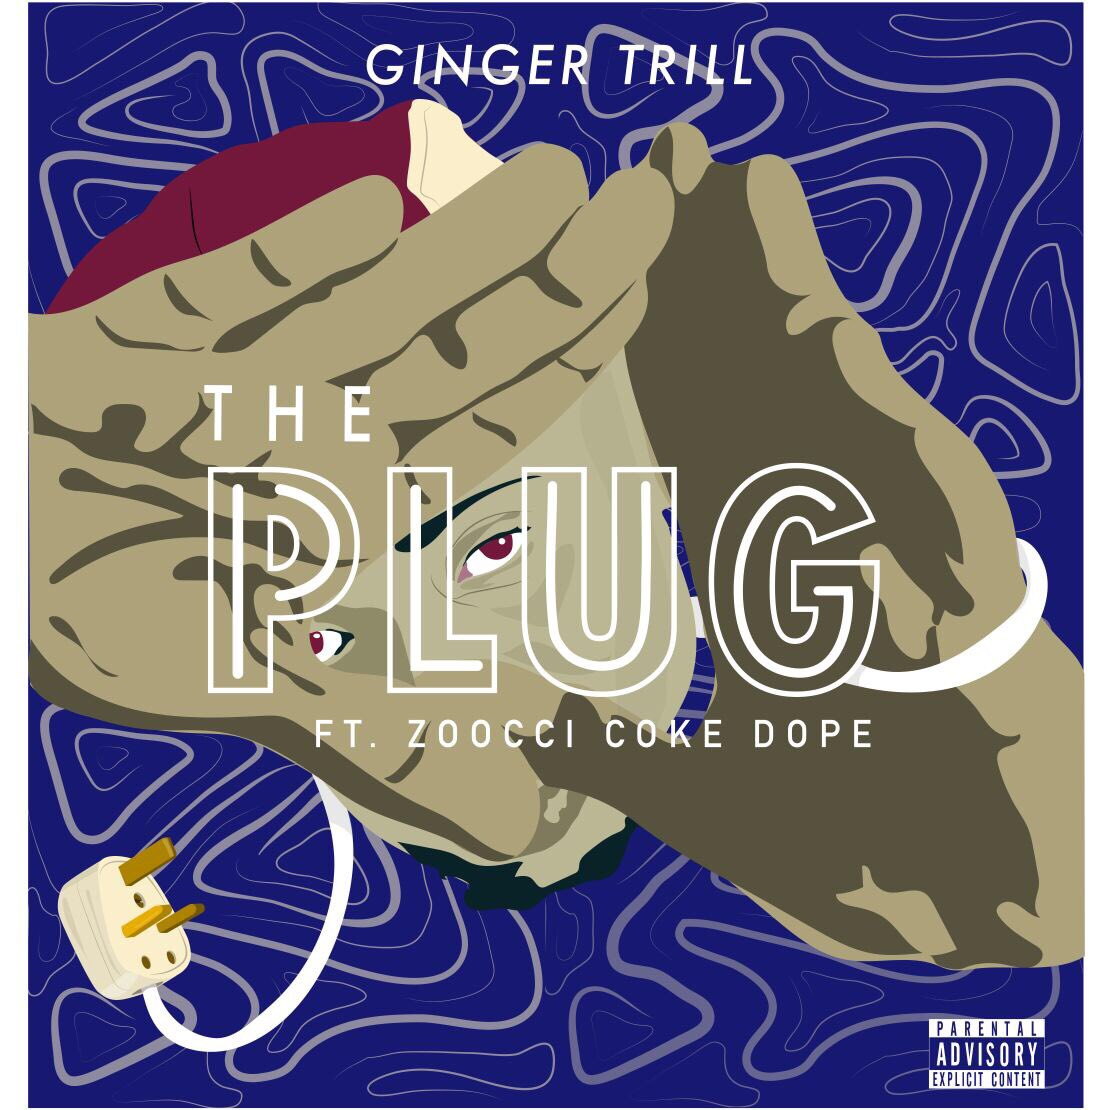 Listen to Ginger Trills Latest 'The Plug' Single Ft. Zoocci Coke Dope DNtj0nzXcAADQBM